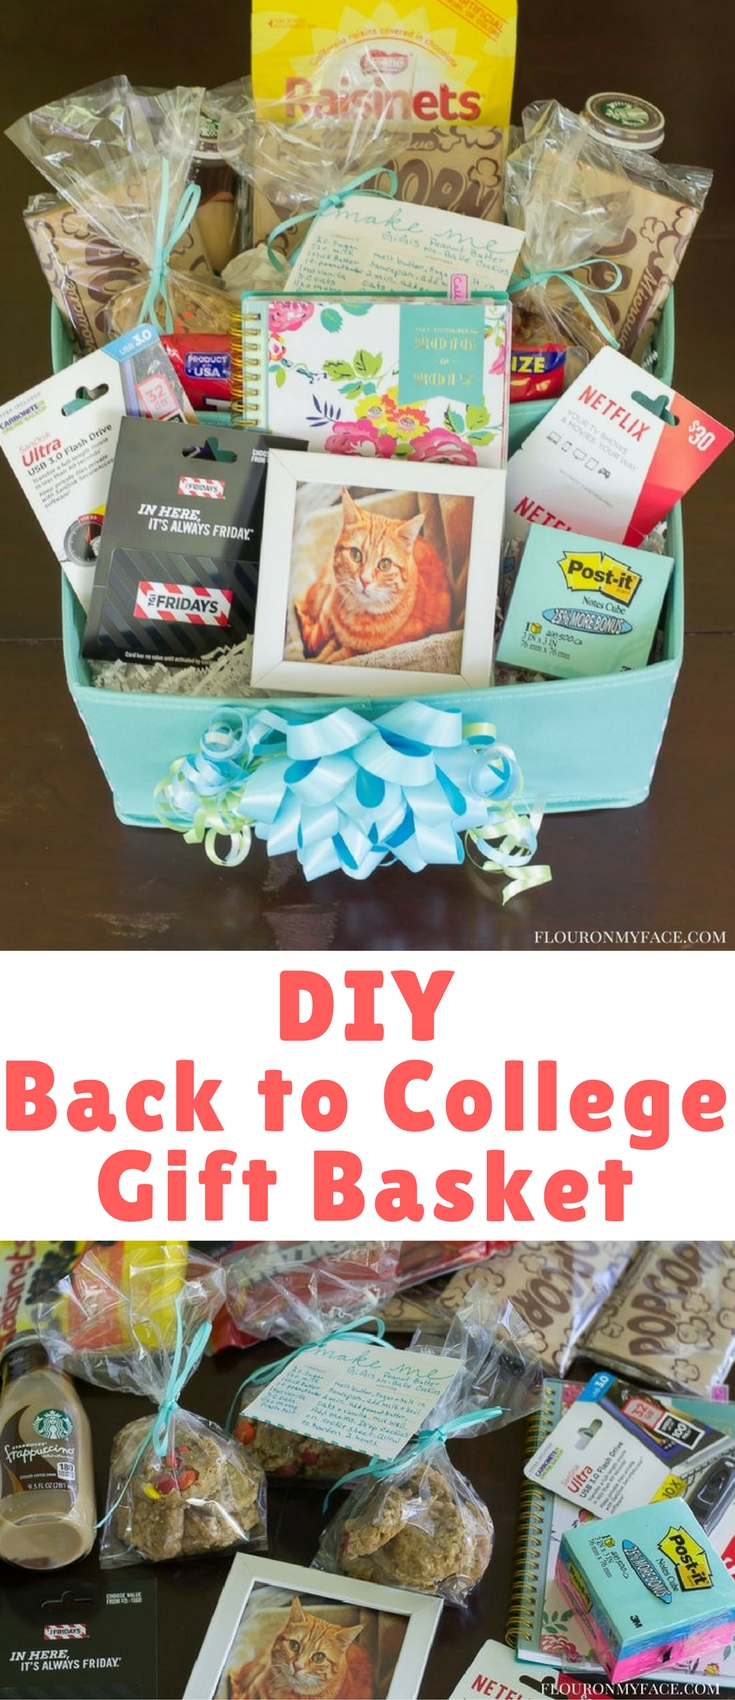 As college students are getting ready to head back to campus after the long summer break send them back to school with this easy DIY College Gift Basket packed full of some of their favorite things from home.